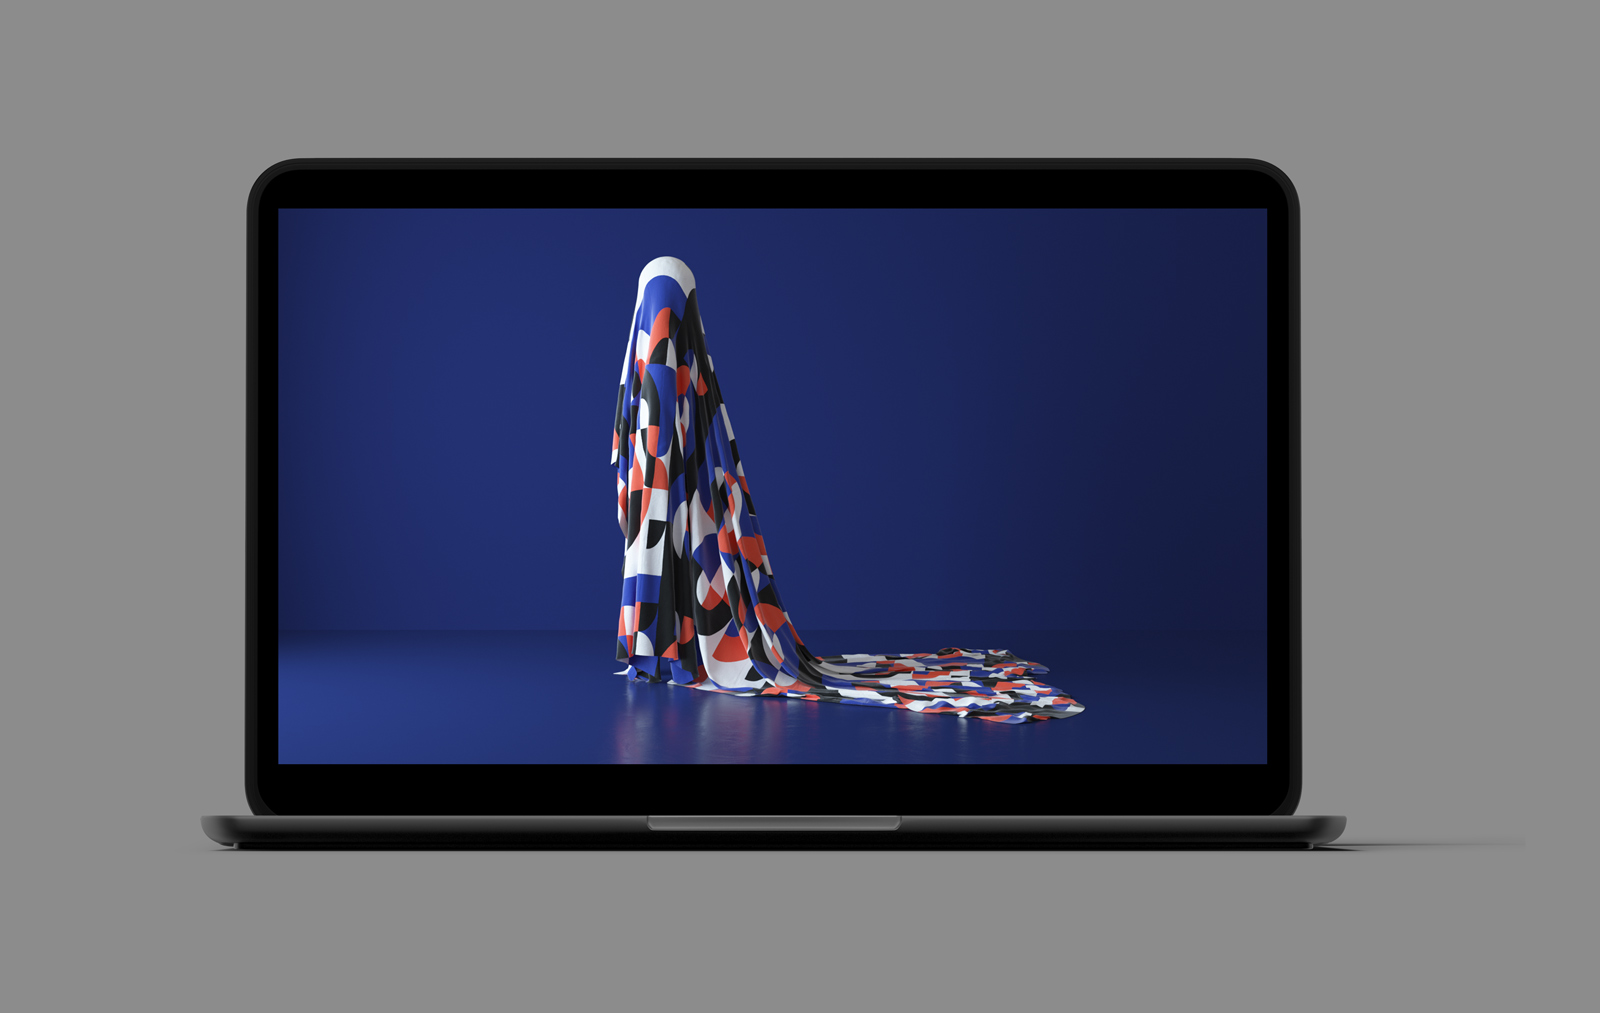 PixelBook-Go-and-Pixel-4-XL_blue_ghost_02